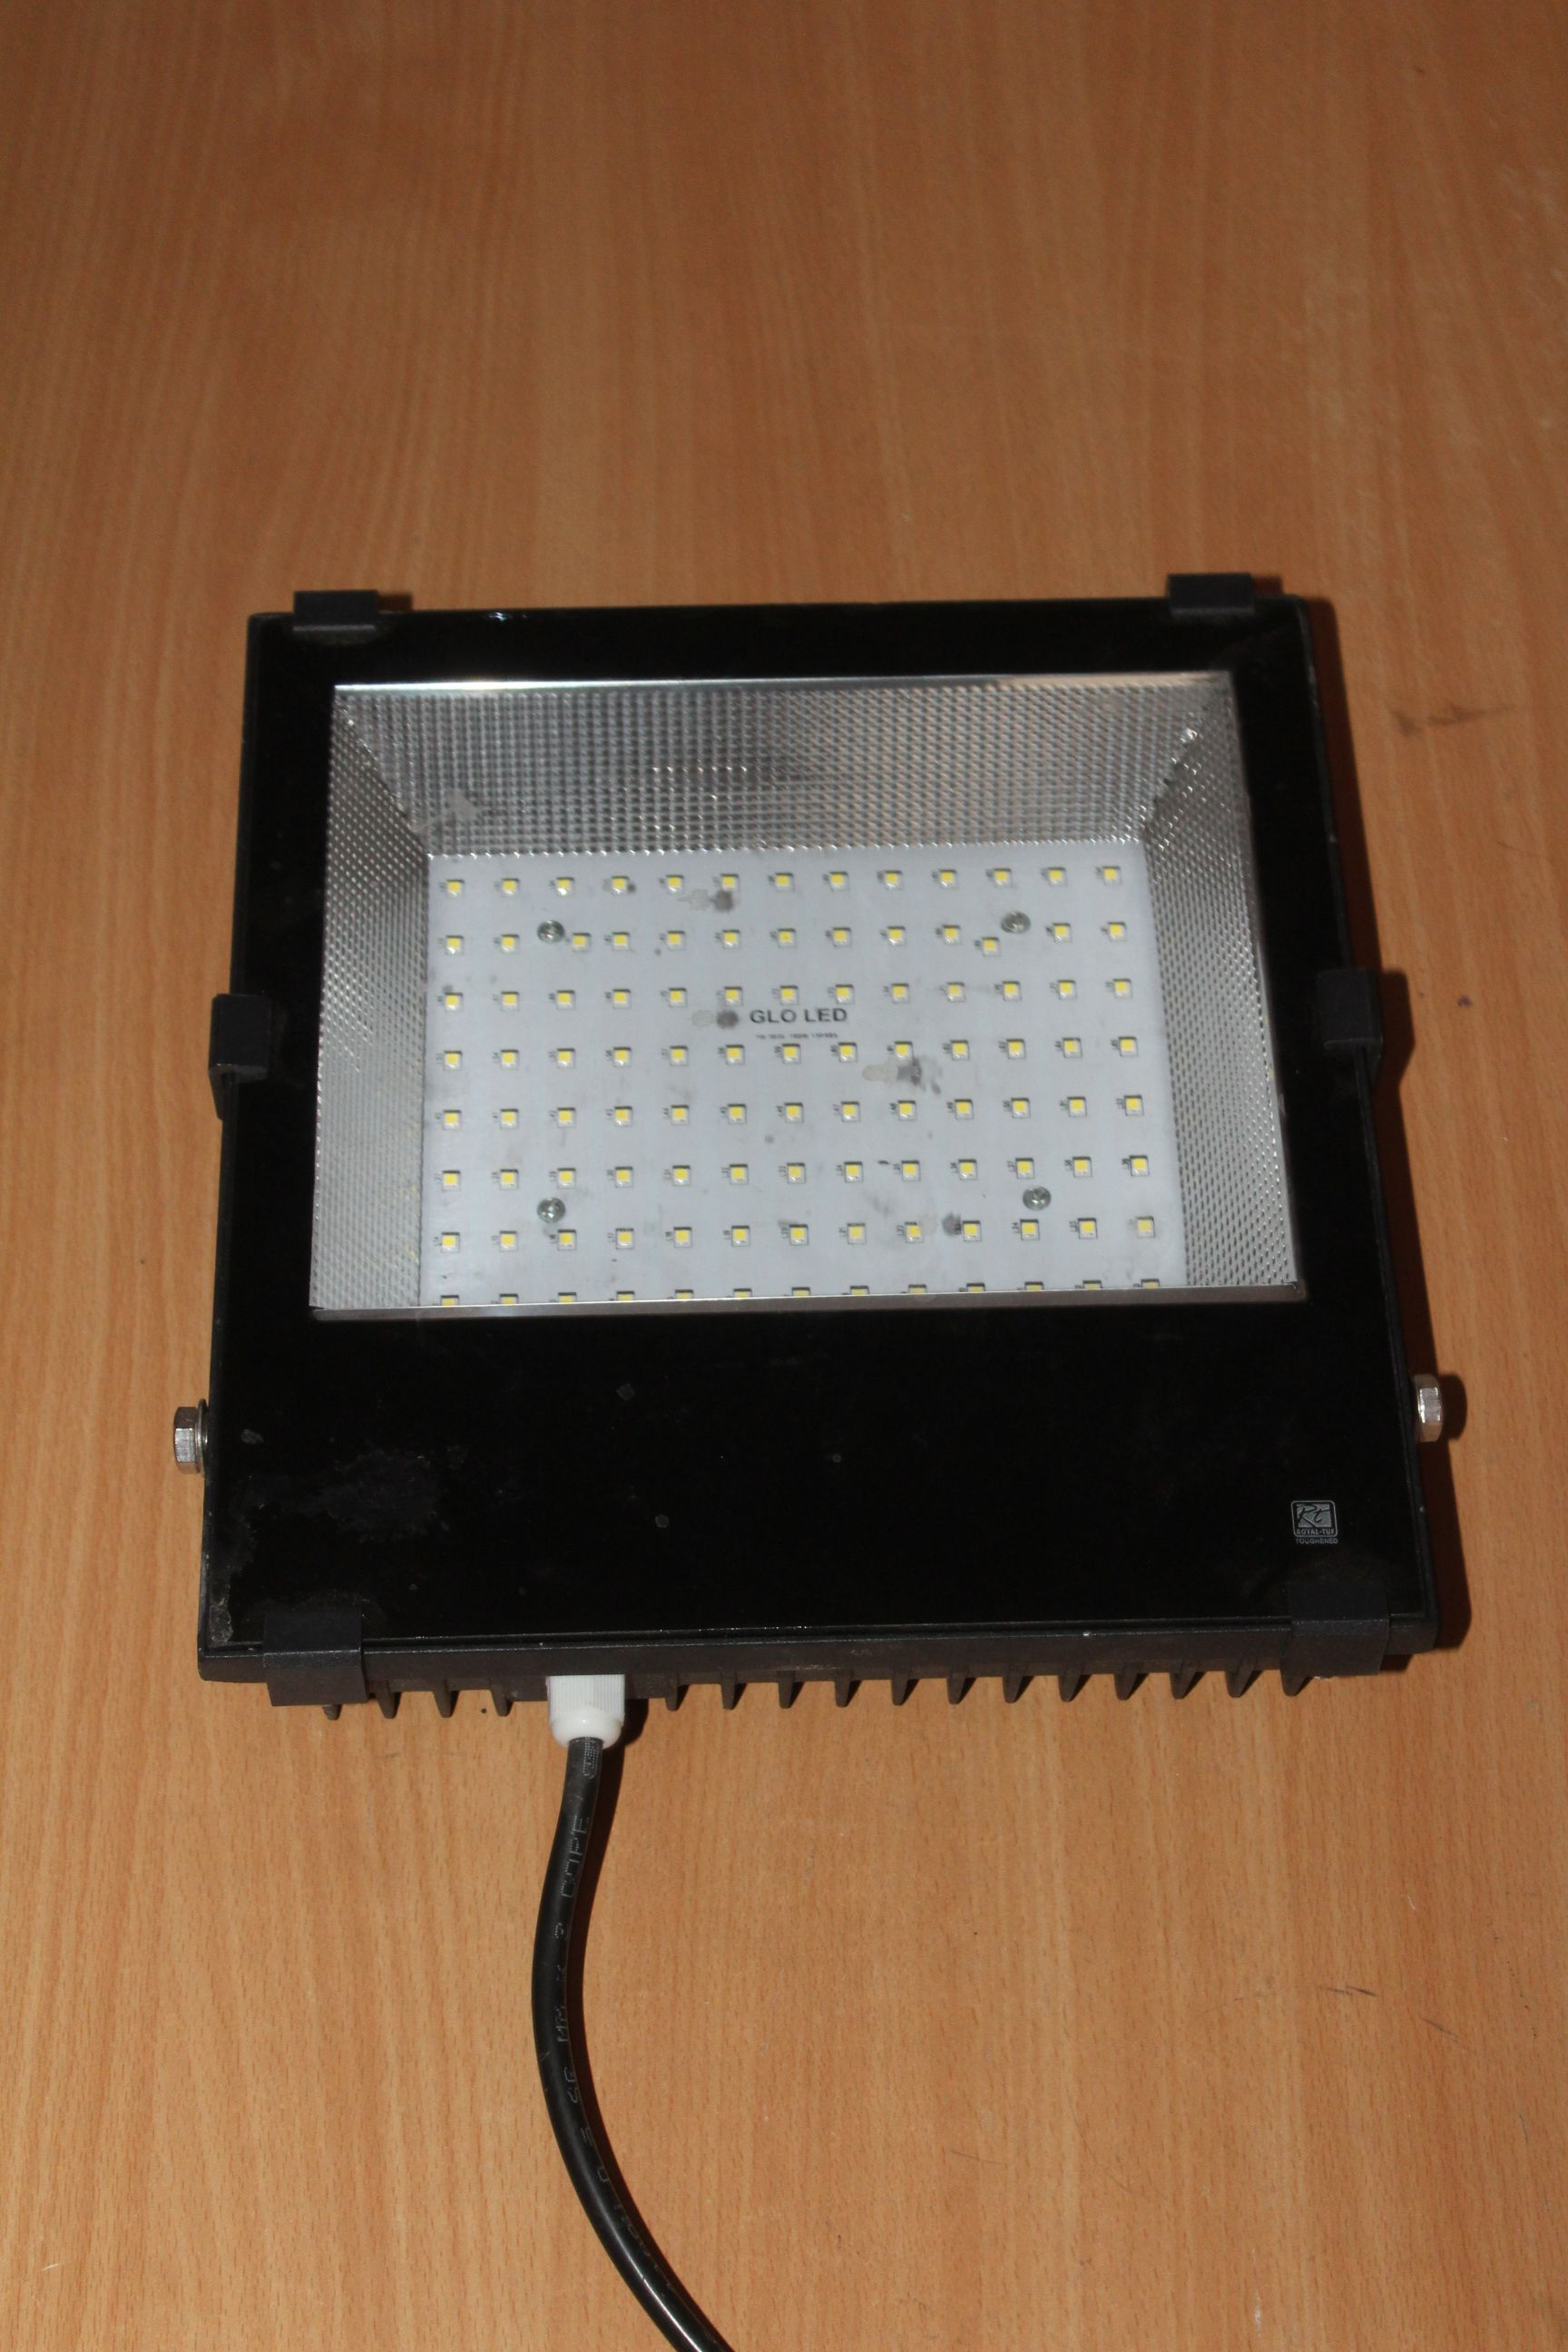 Hello Friends Glo Led Is Offering 100w Led Flood Light Best Quality With Price 3 138 Main Features Lumens Per Watt 140 Light Beam Angl Led Lighting Solutions Light Beam Lighting Manufacturers